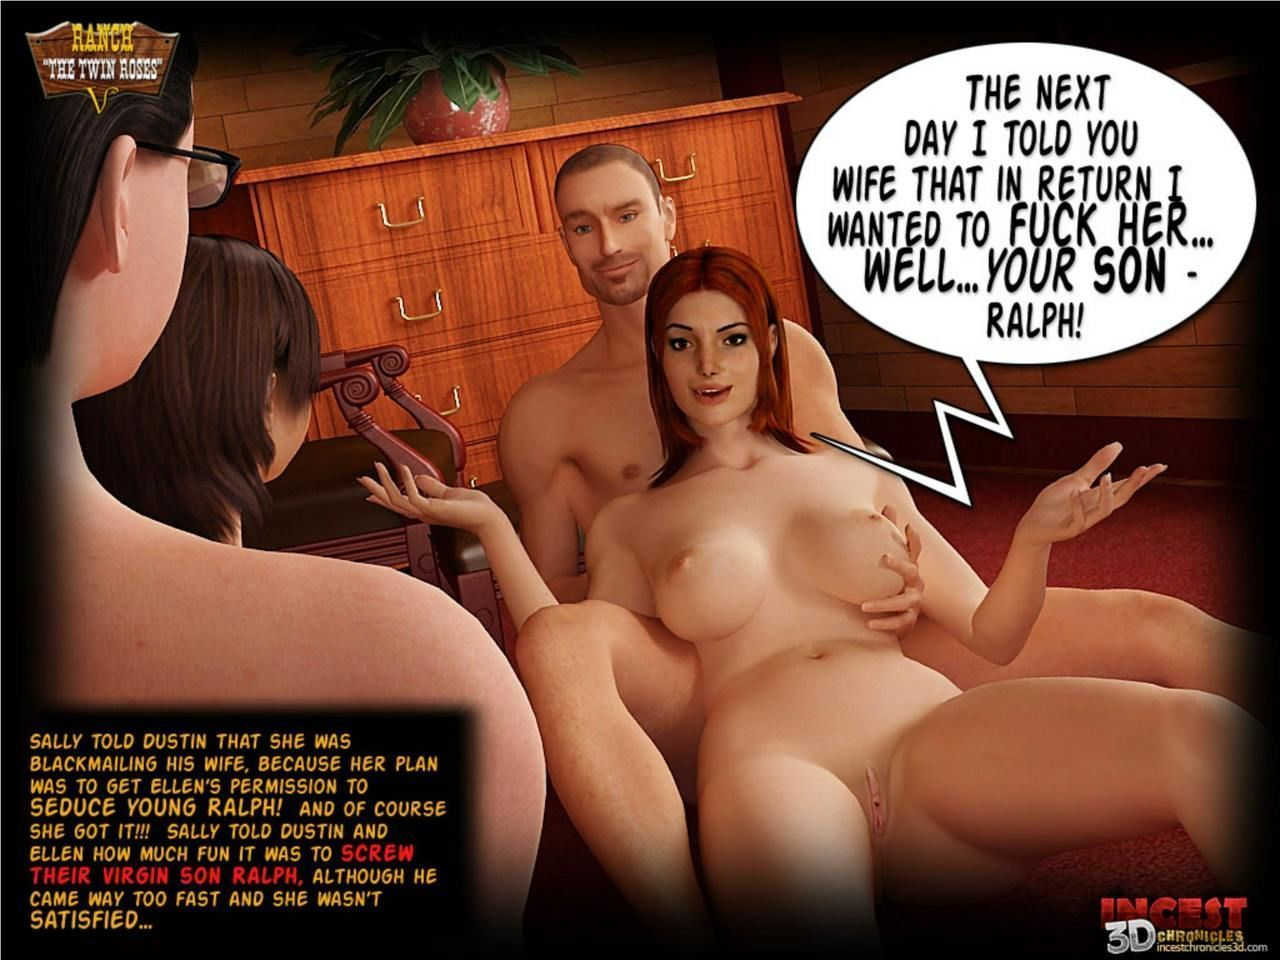 Ranch - The Twin Roses 1-5 - part 19